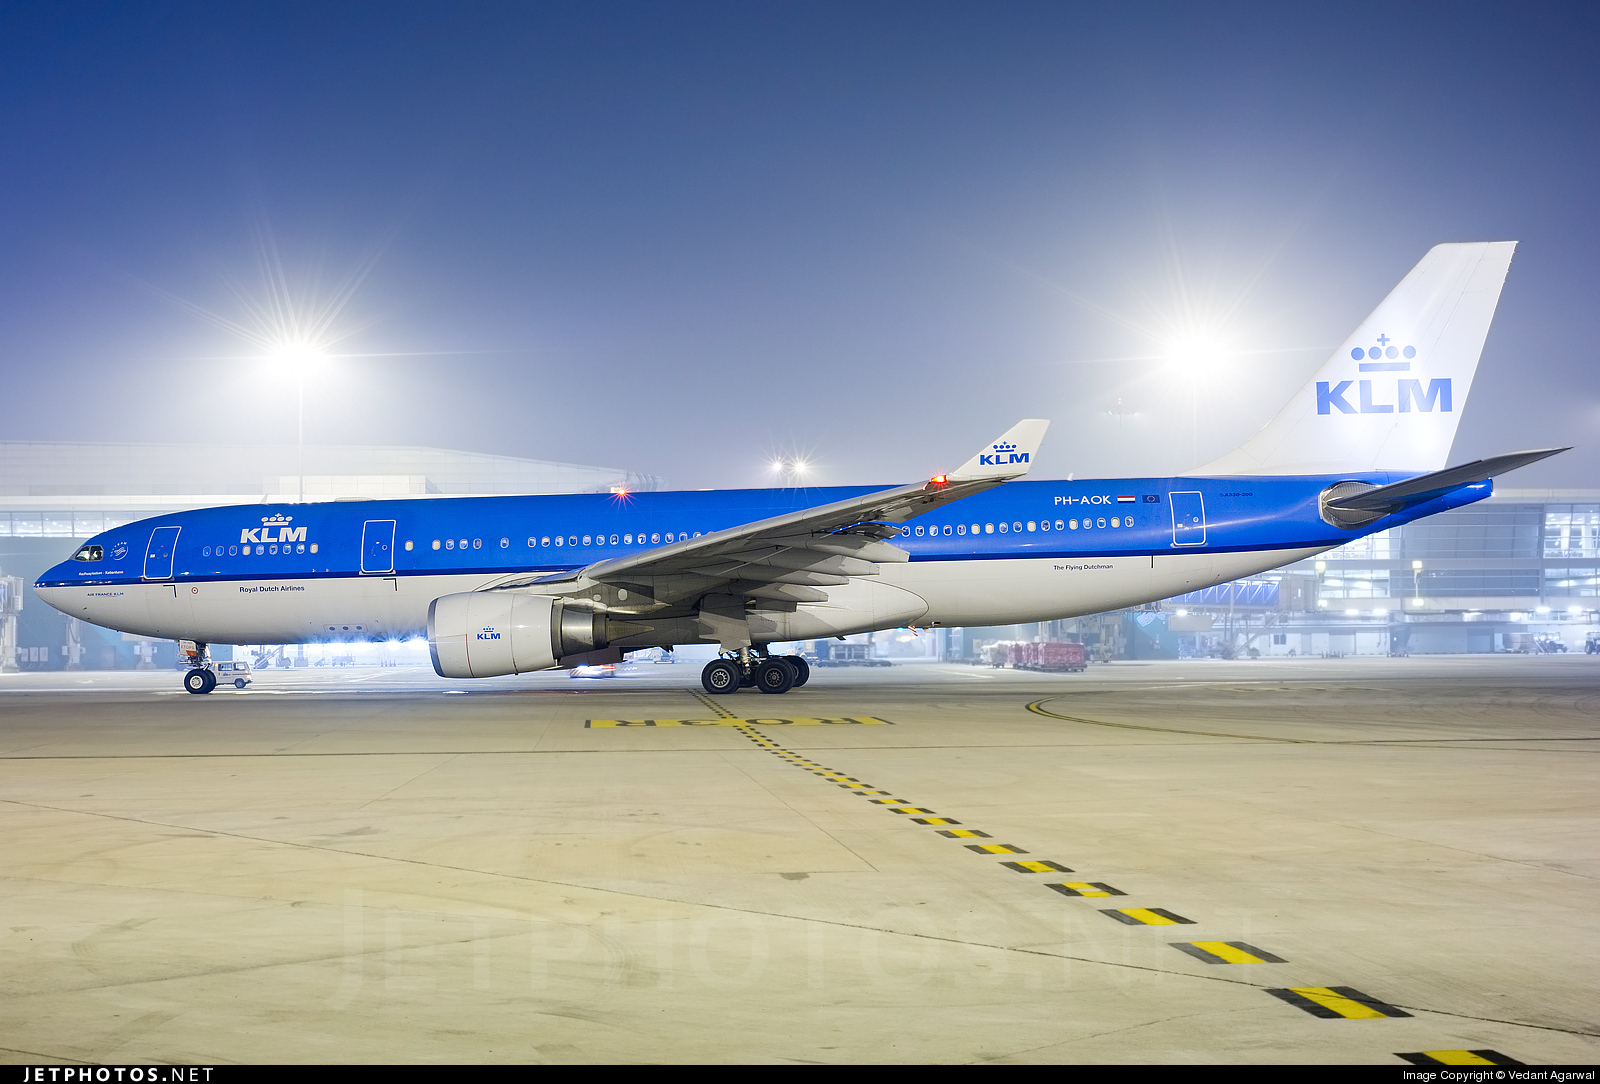 PH-AOK - Airbus A330-203 - KLM Royal Dutch Airlines